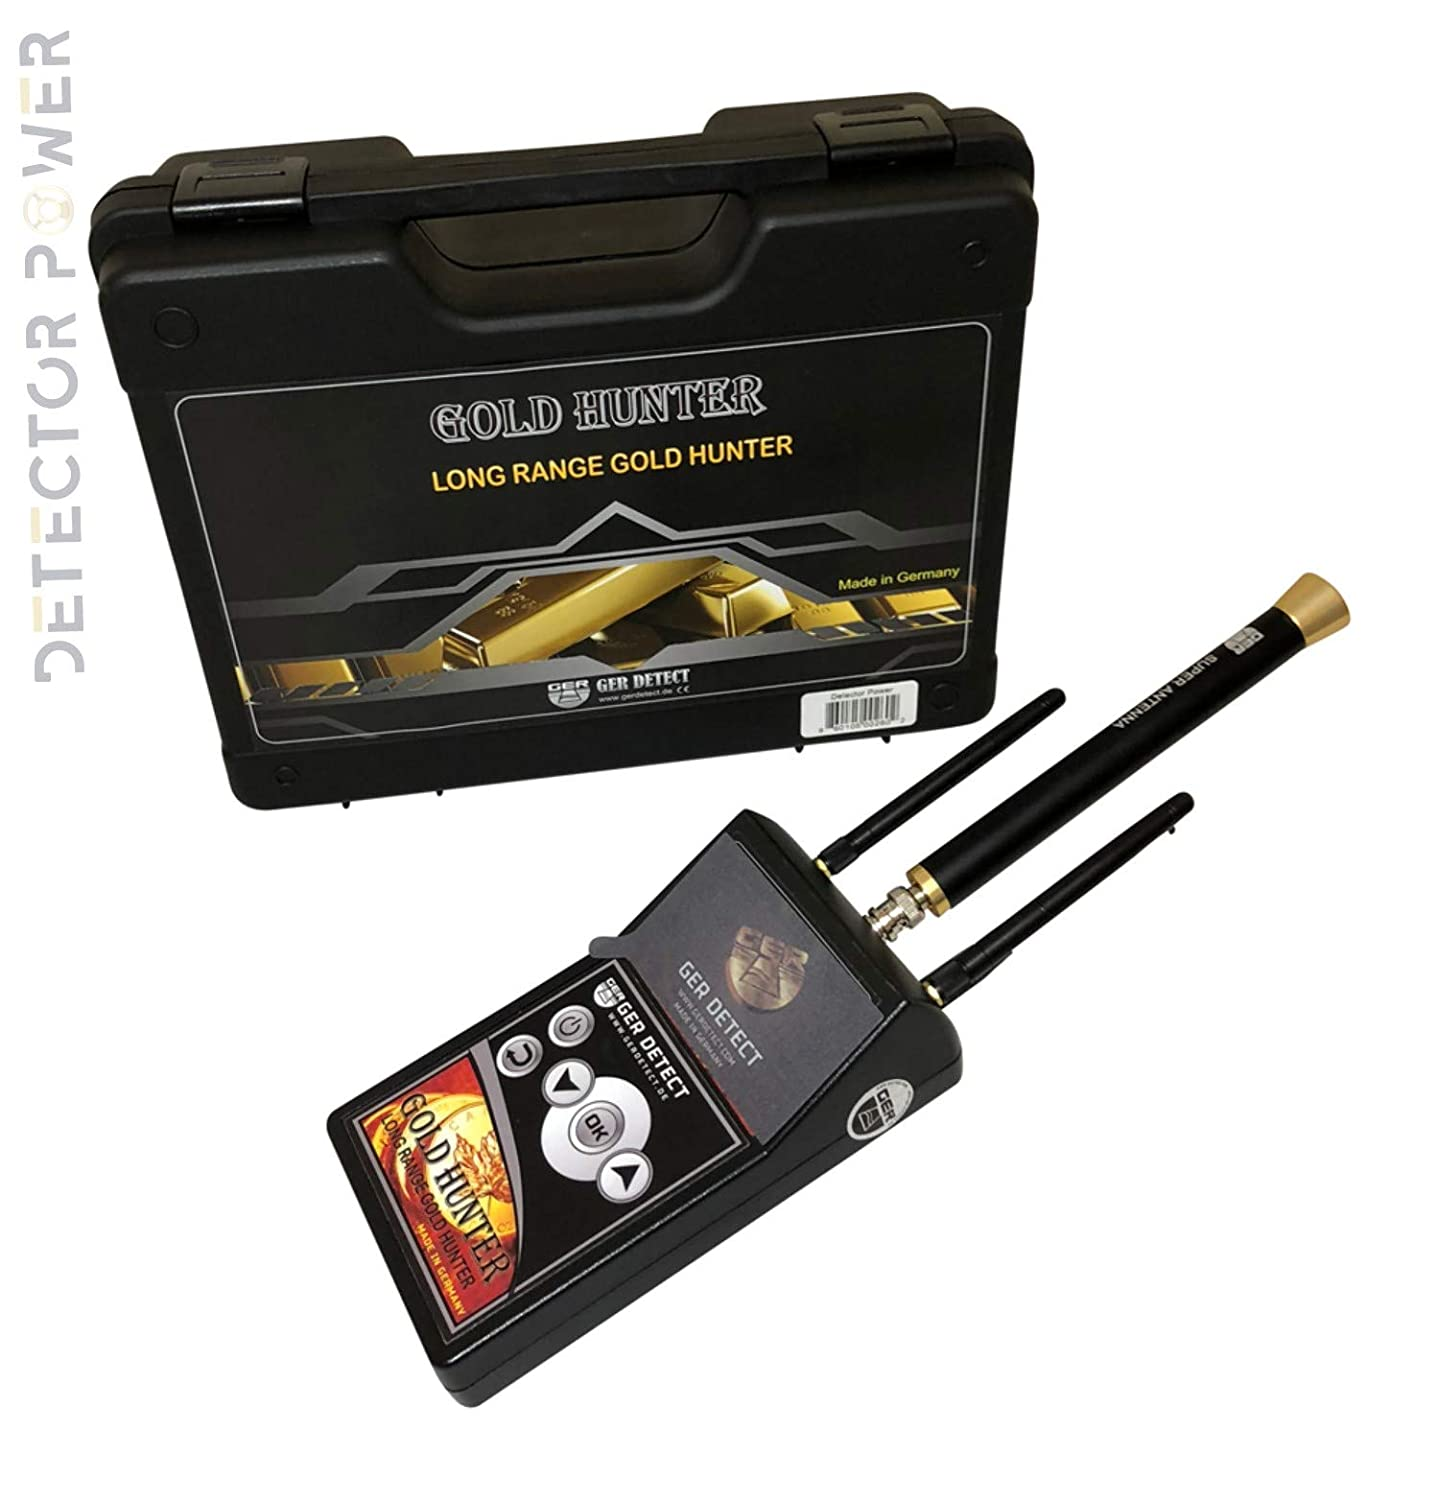 Amazon.com : GER DETECT Gold Hunter Professional Geolocator Long Range Detector | Underground Depth Scanner & Distance Targeting | Find Gold, Silver, Coins, ...